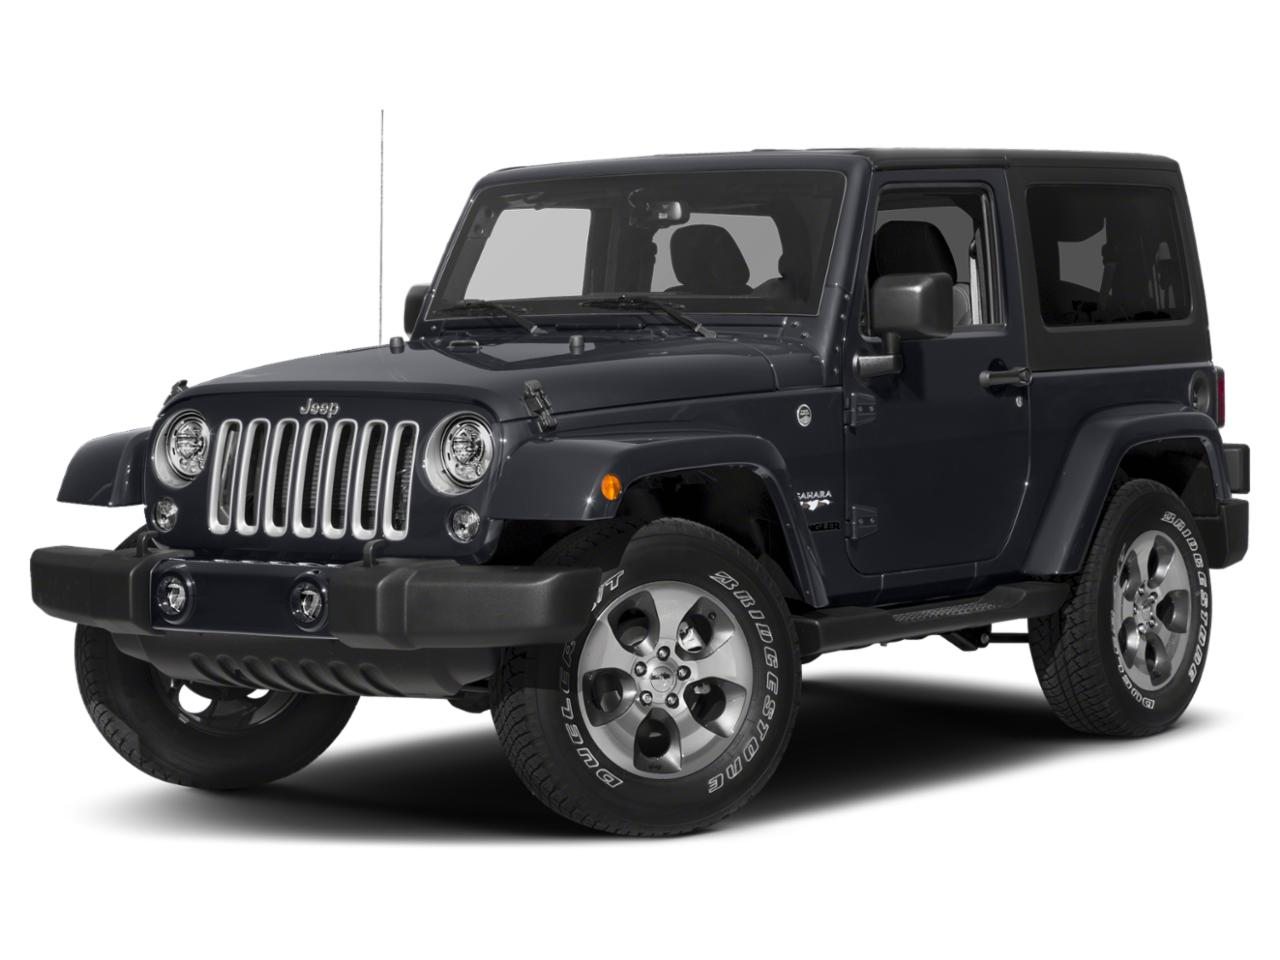 2017 Jeep Wrangler Vehicle Photo in Prince Frederick, MD 20678